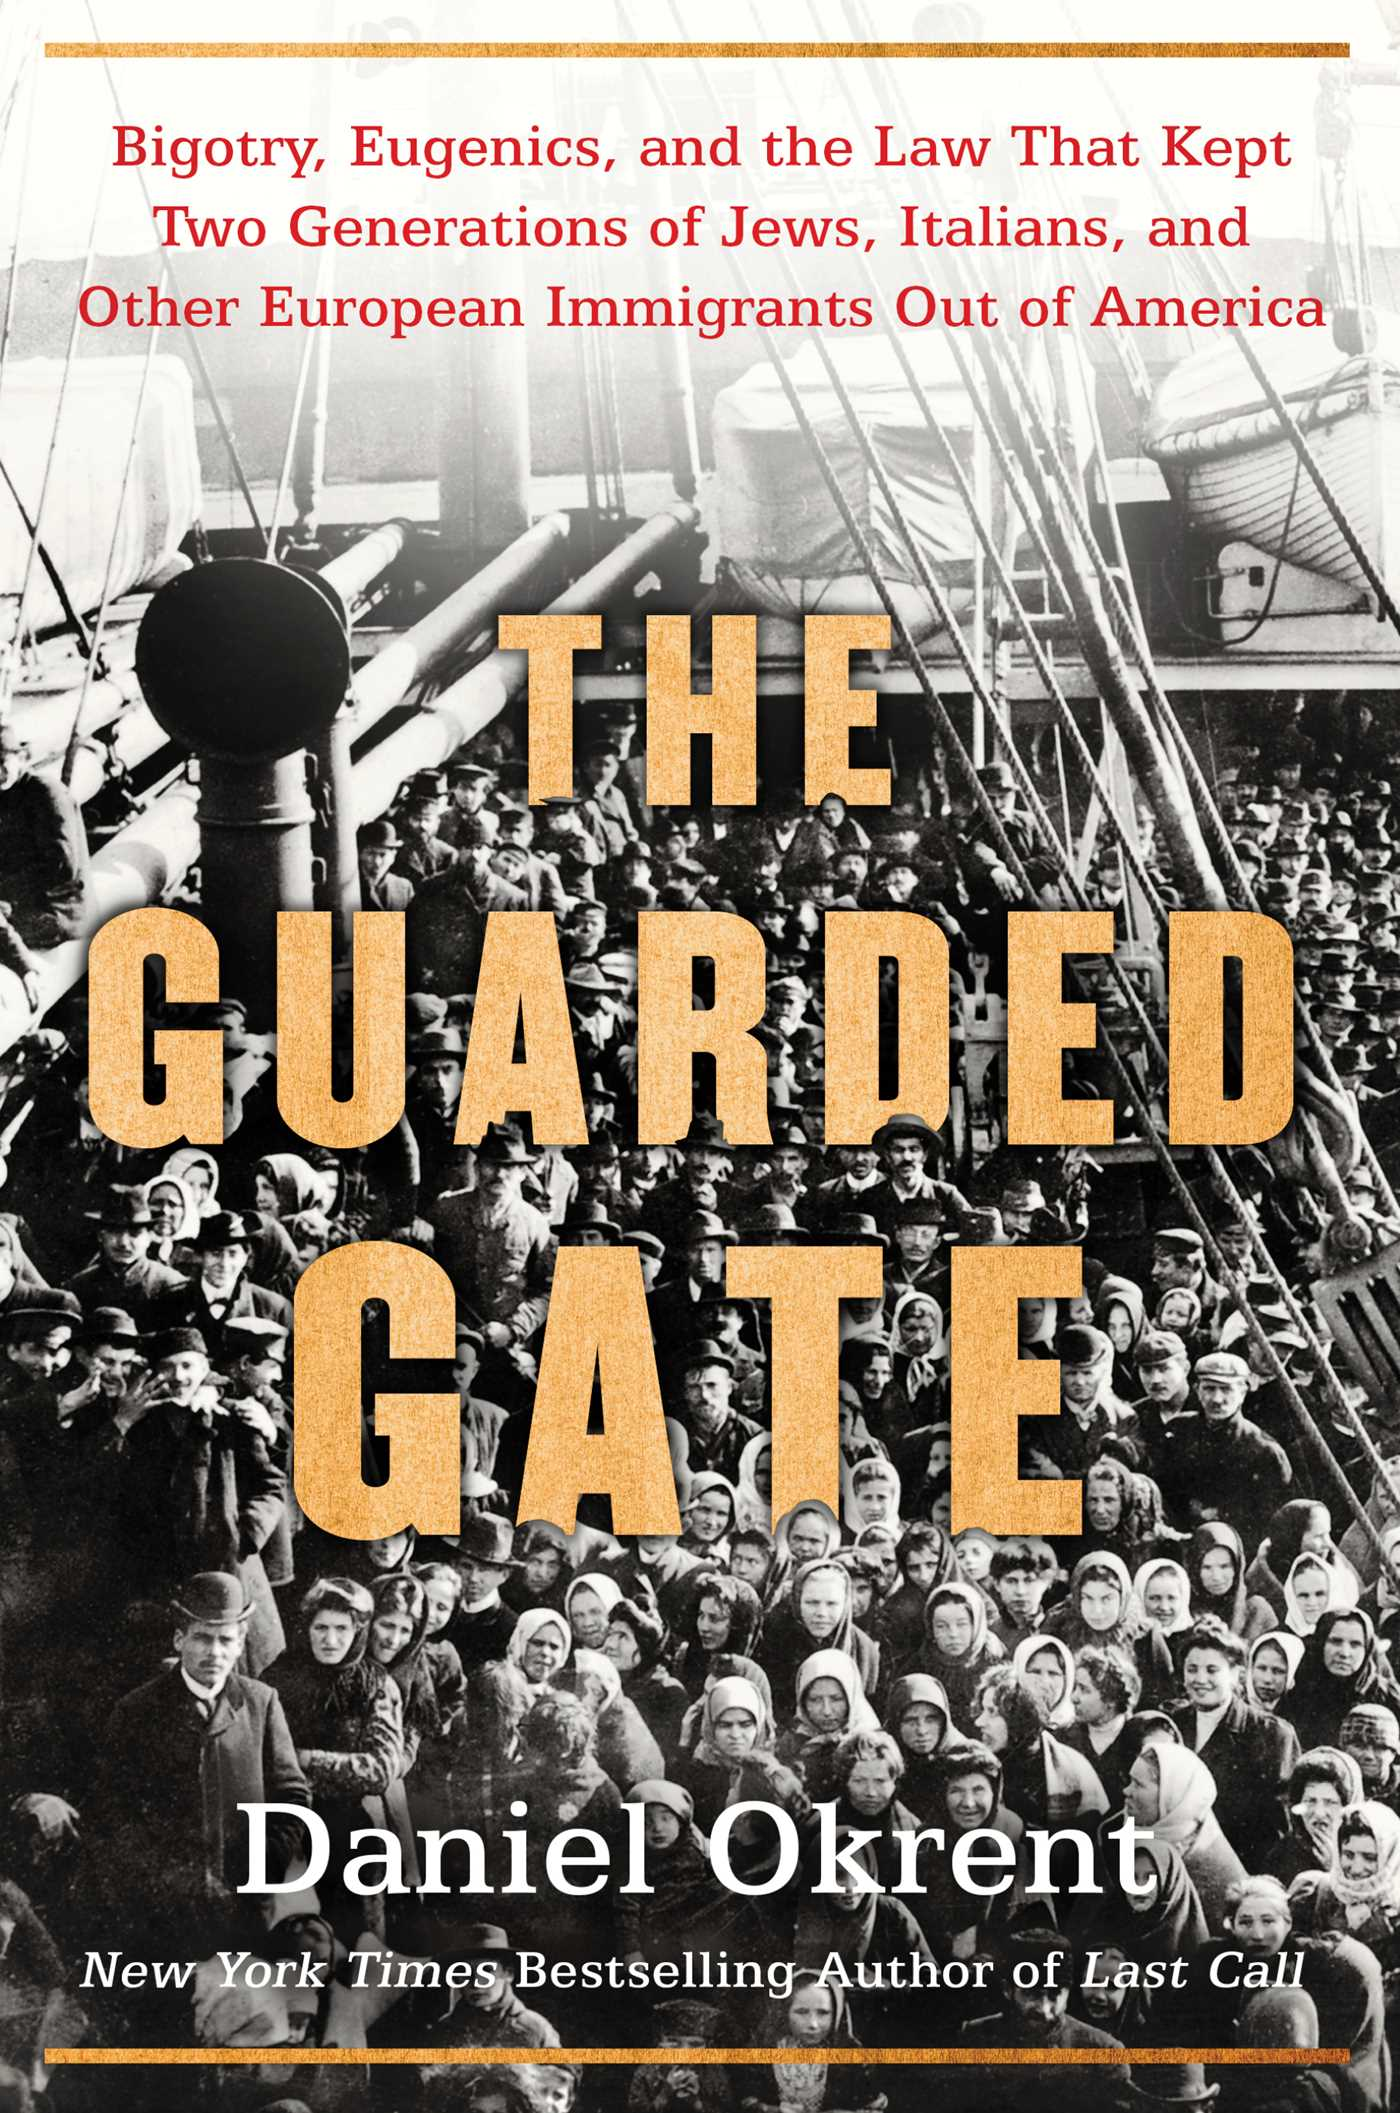 The Guarded Gate | Book by Daniel Okrent | Official